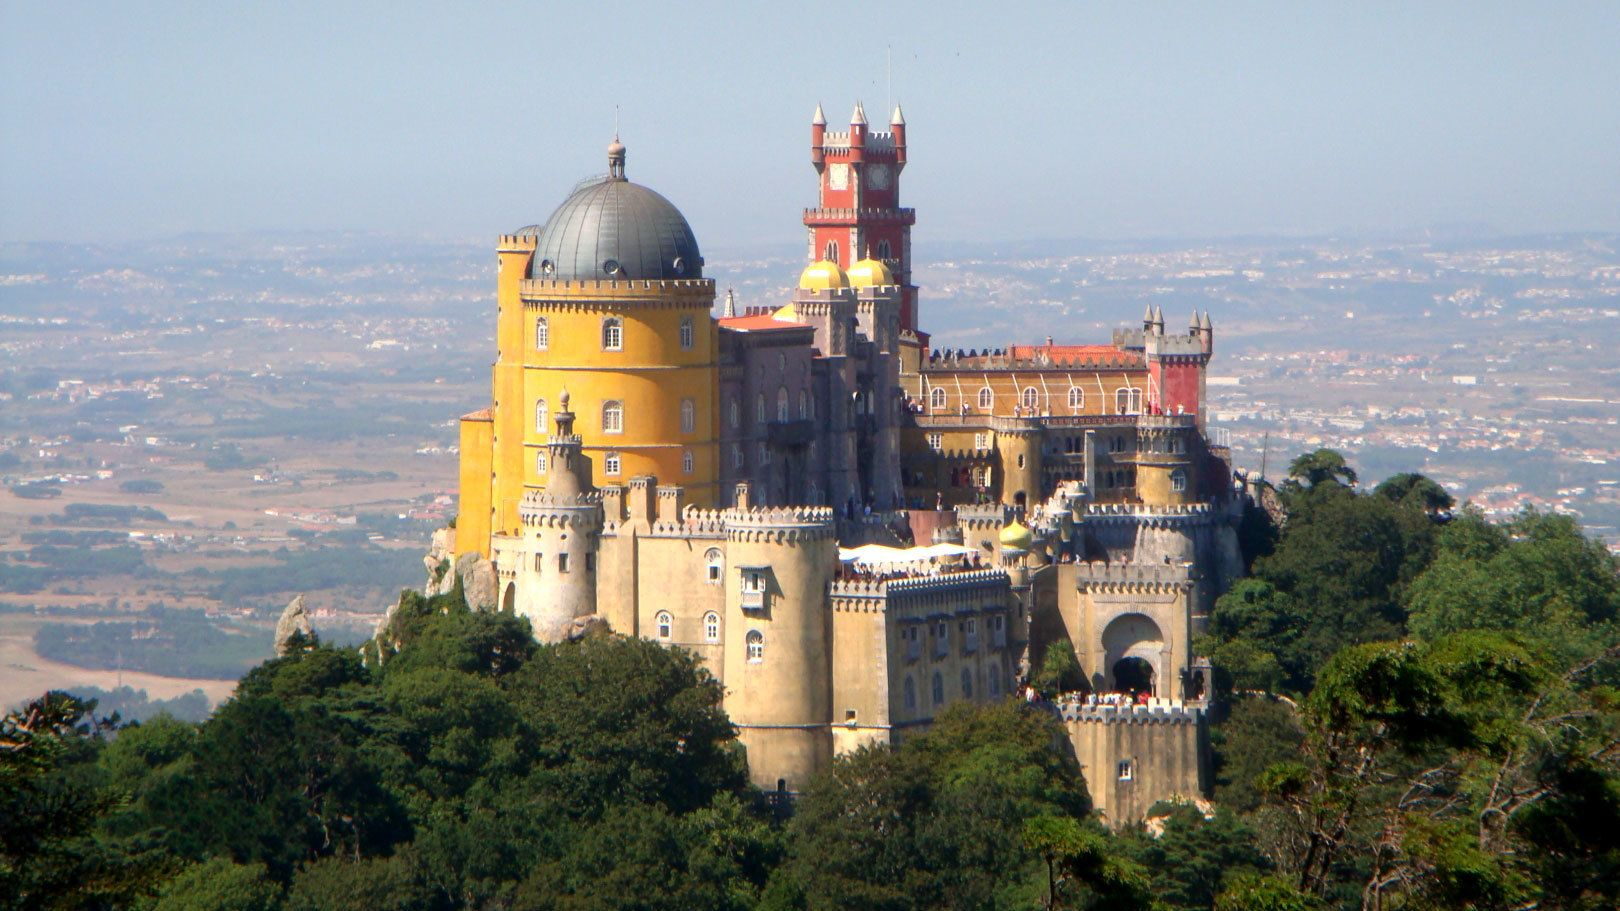 Large castle on peak of hill overlooking Sintra